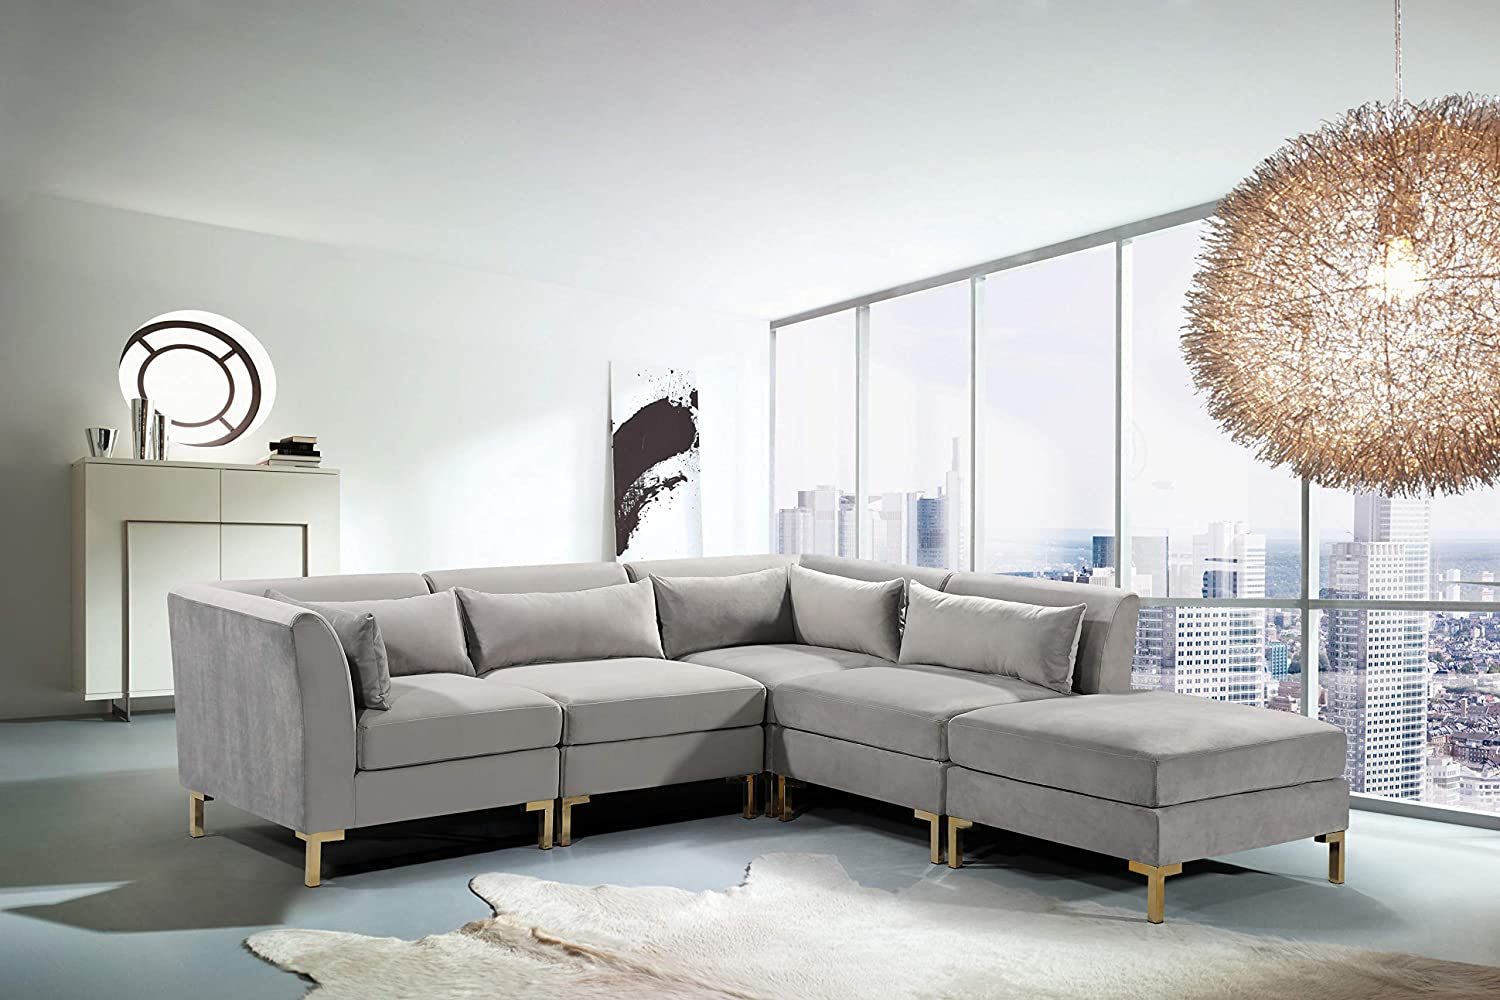 Iconic Home FSA9258-AN Girardi Modular Chaise Sectional Sofa Velvet  Upholstered Solid Gold Tone Metal Y-Leg with 6 Throw Pillows Modern  Contemporary ...